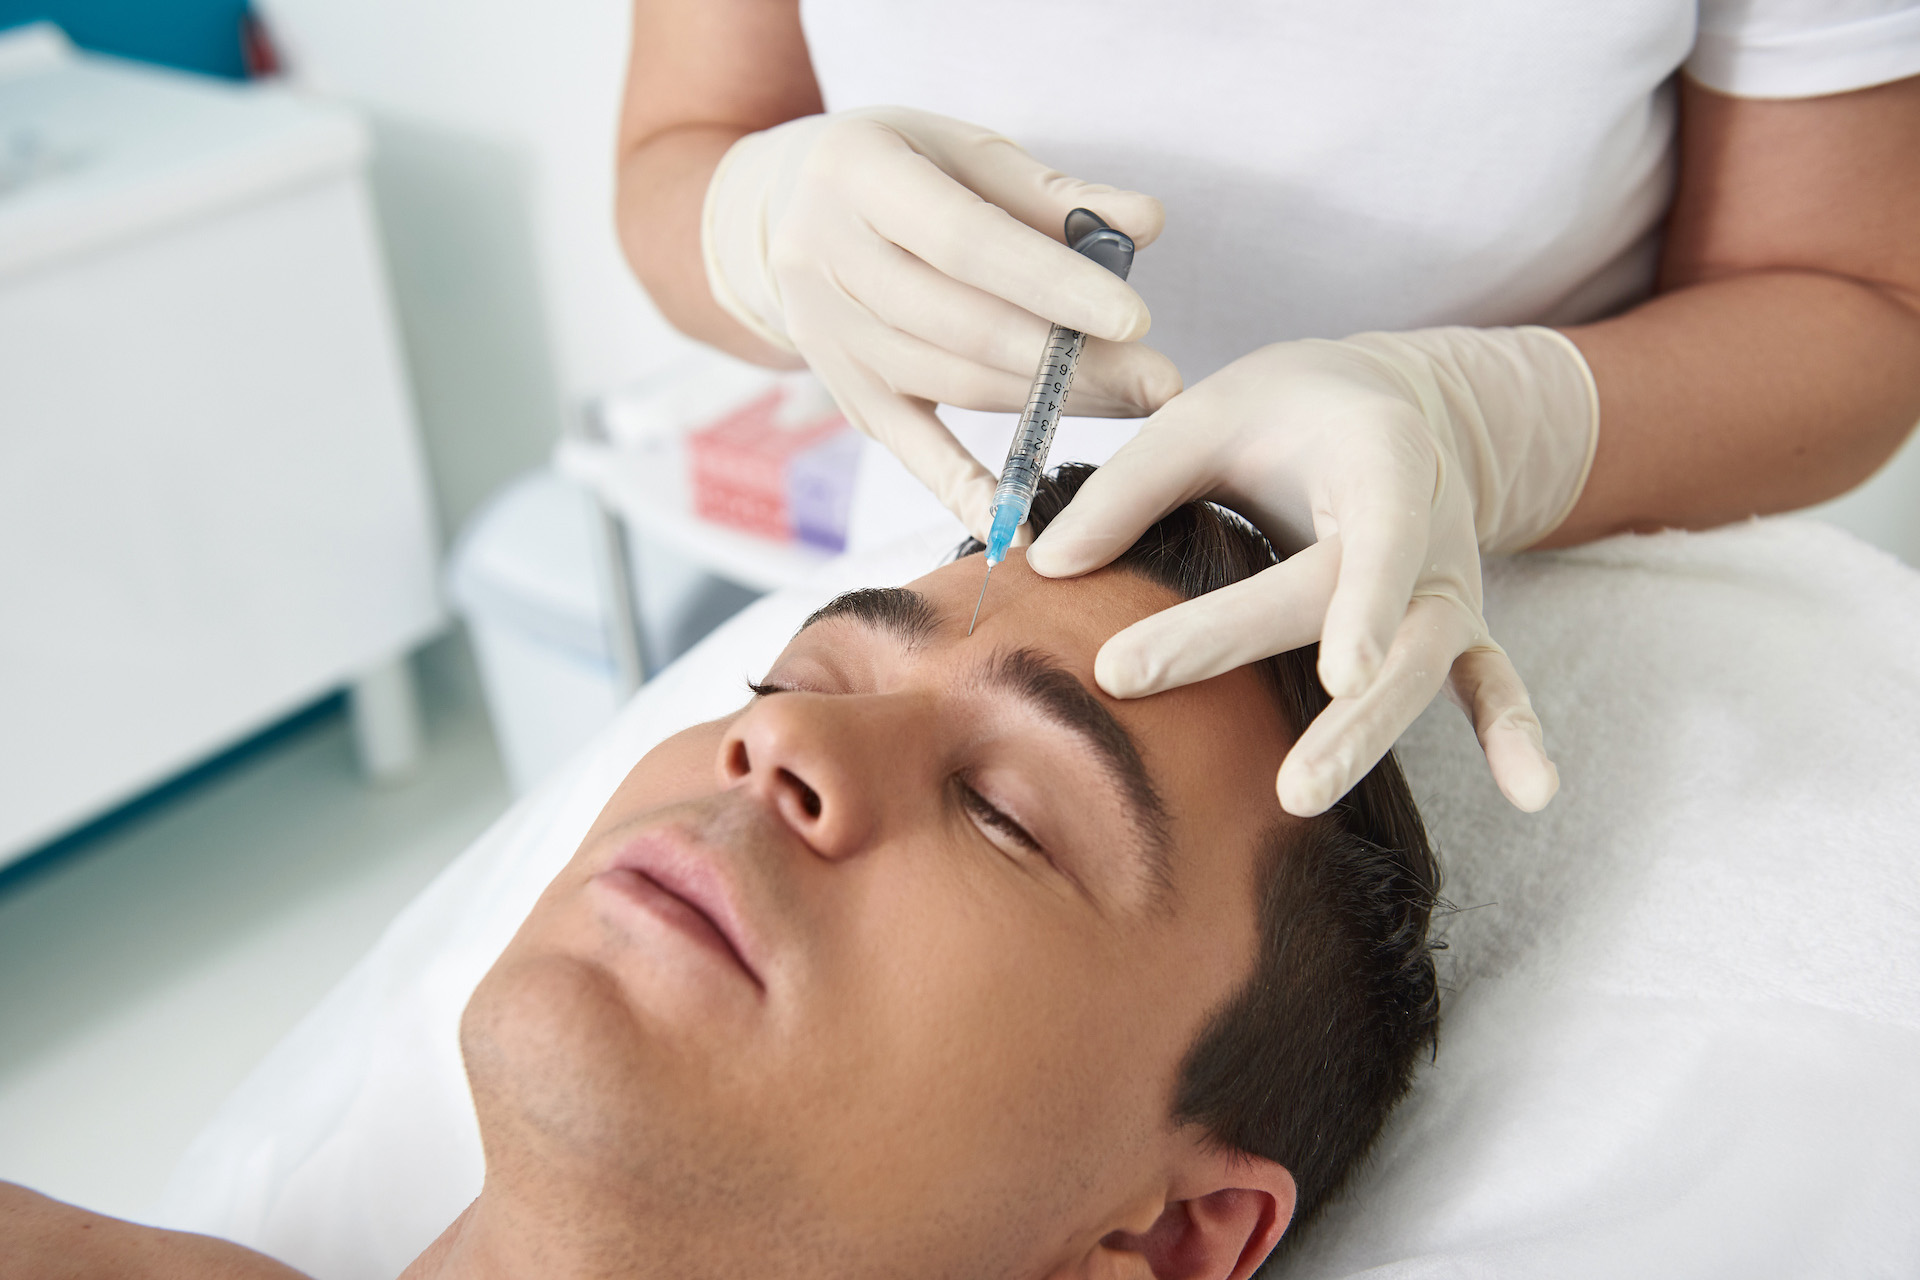 How To Prepare For Your First Botox Treatment